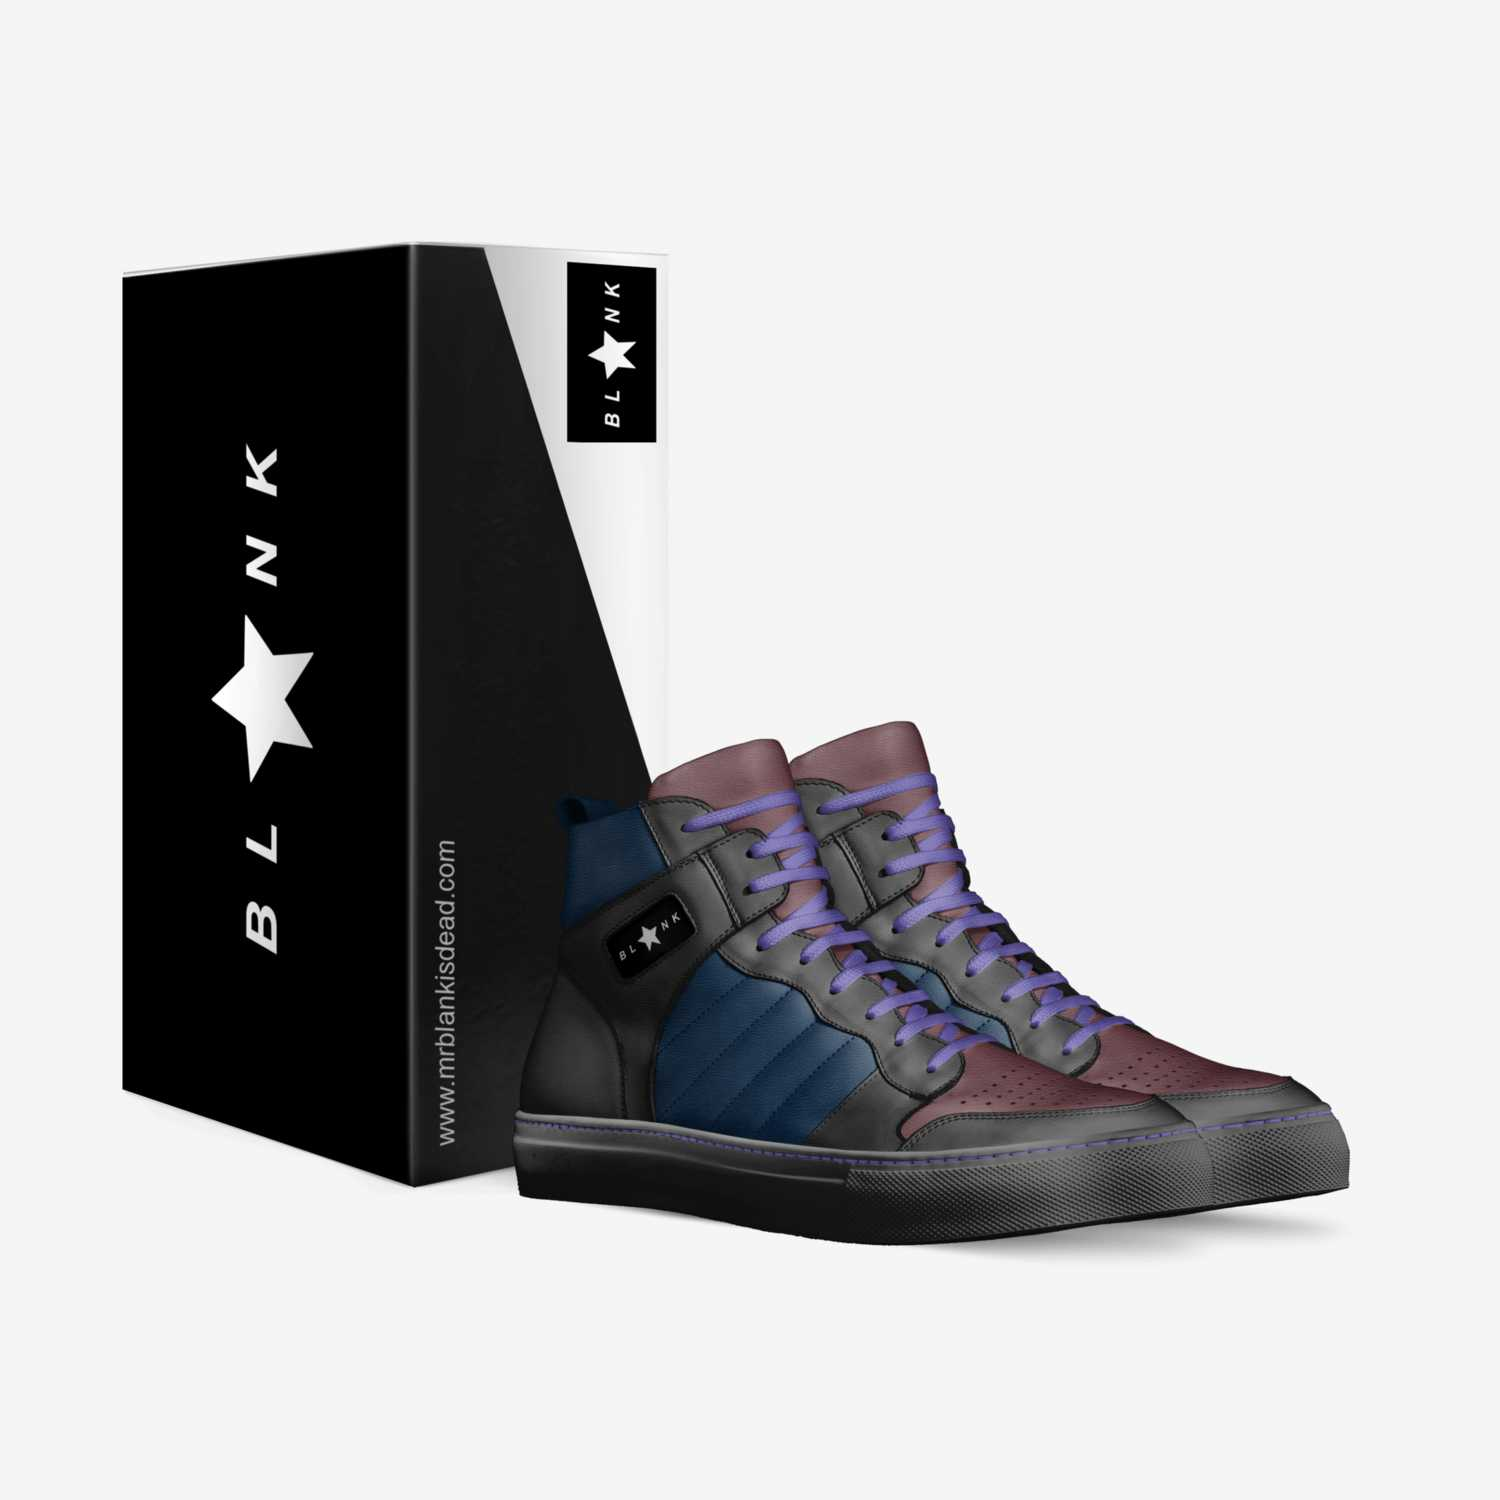 BL*NK custom made in Italy shoes by Mr Blank | Box view